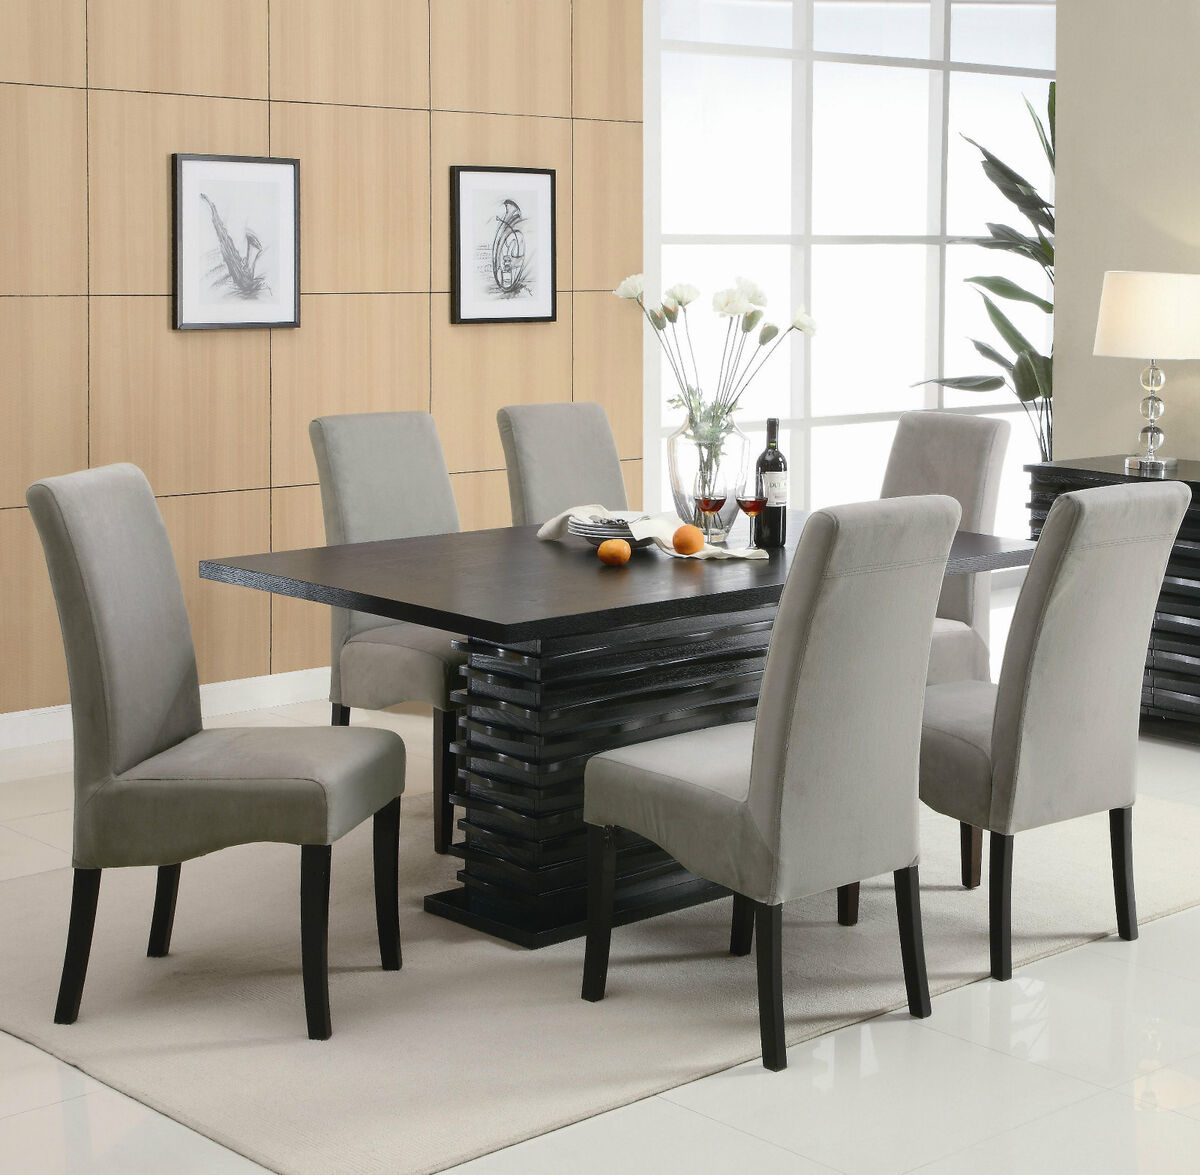 Dining table furniture contemporary dining table chairs for Black dining table set